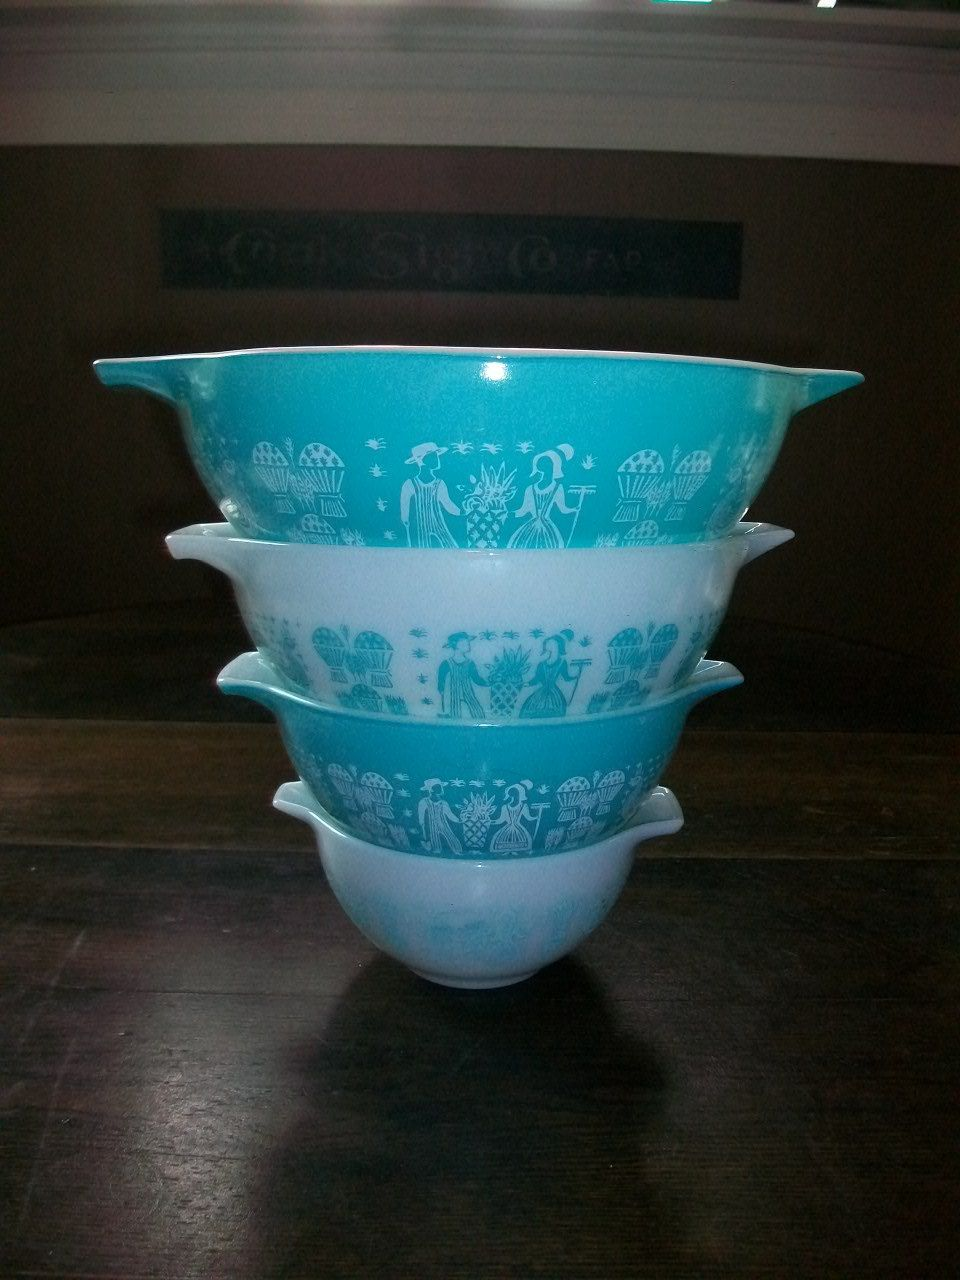 Vintage Pyrex Nesting Bowls Amish Butterprint Turquoise Blue and ...